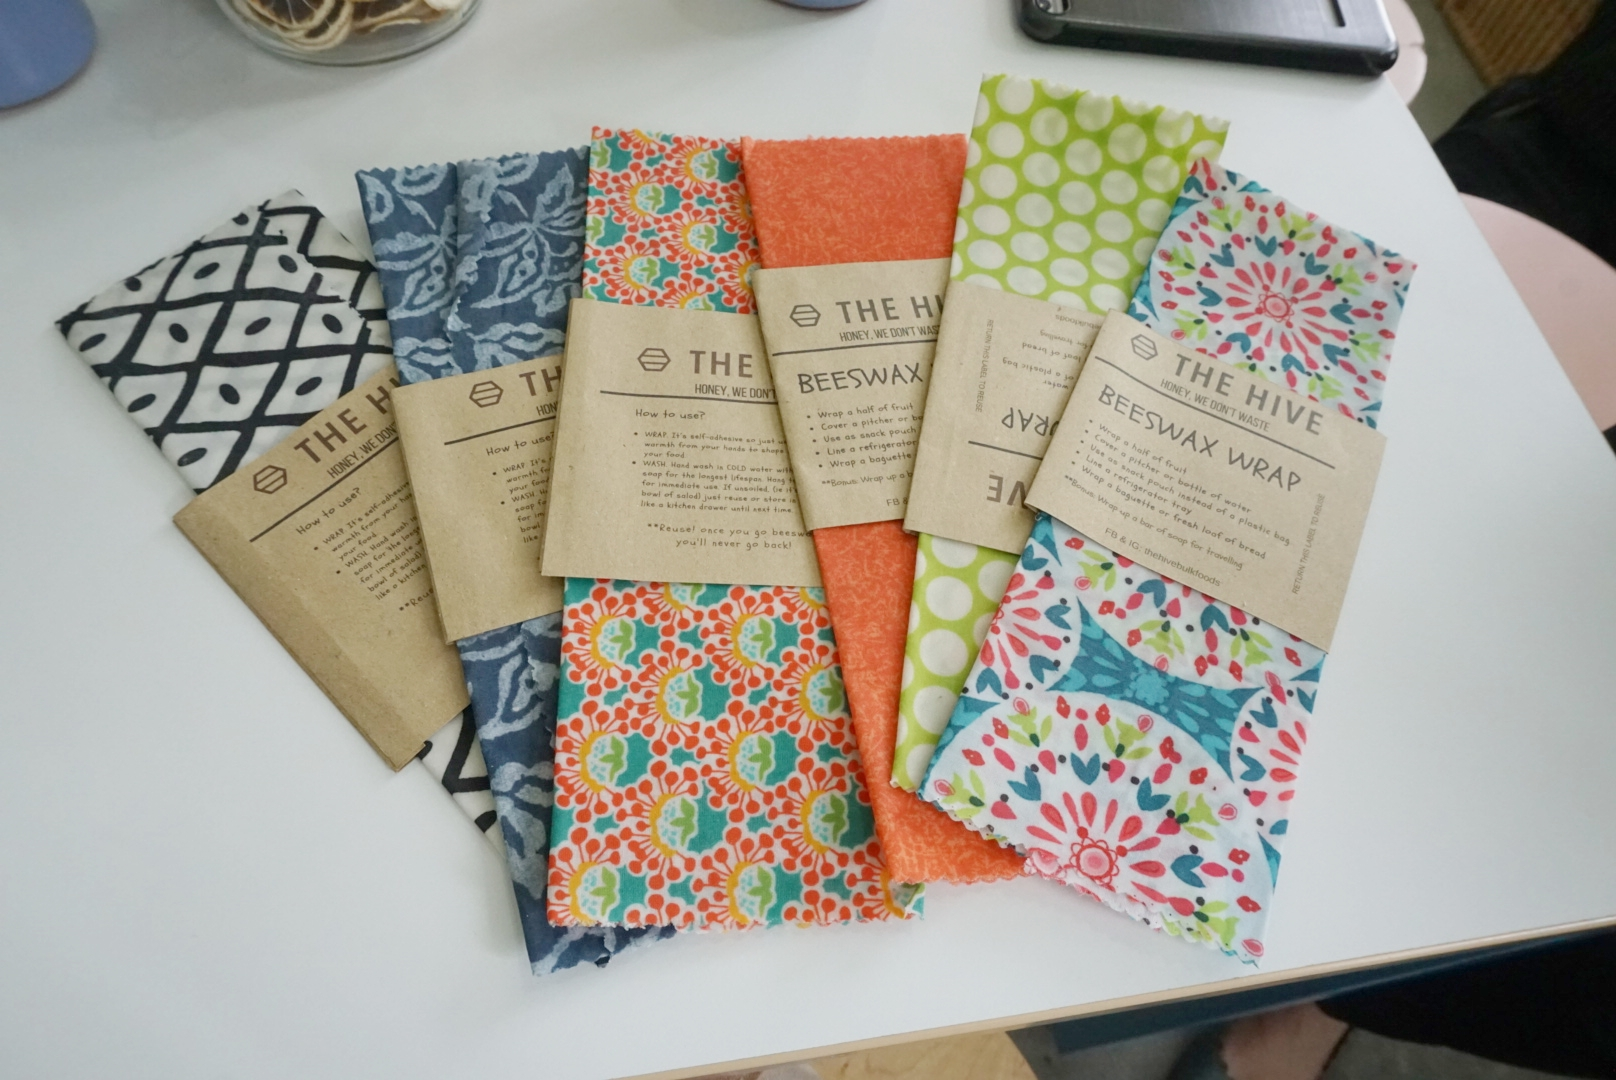 The Hive conducts workshops such as how to make your own beeswax wrap! You can also purchase the wraps at their store!